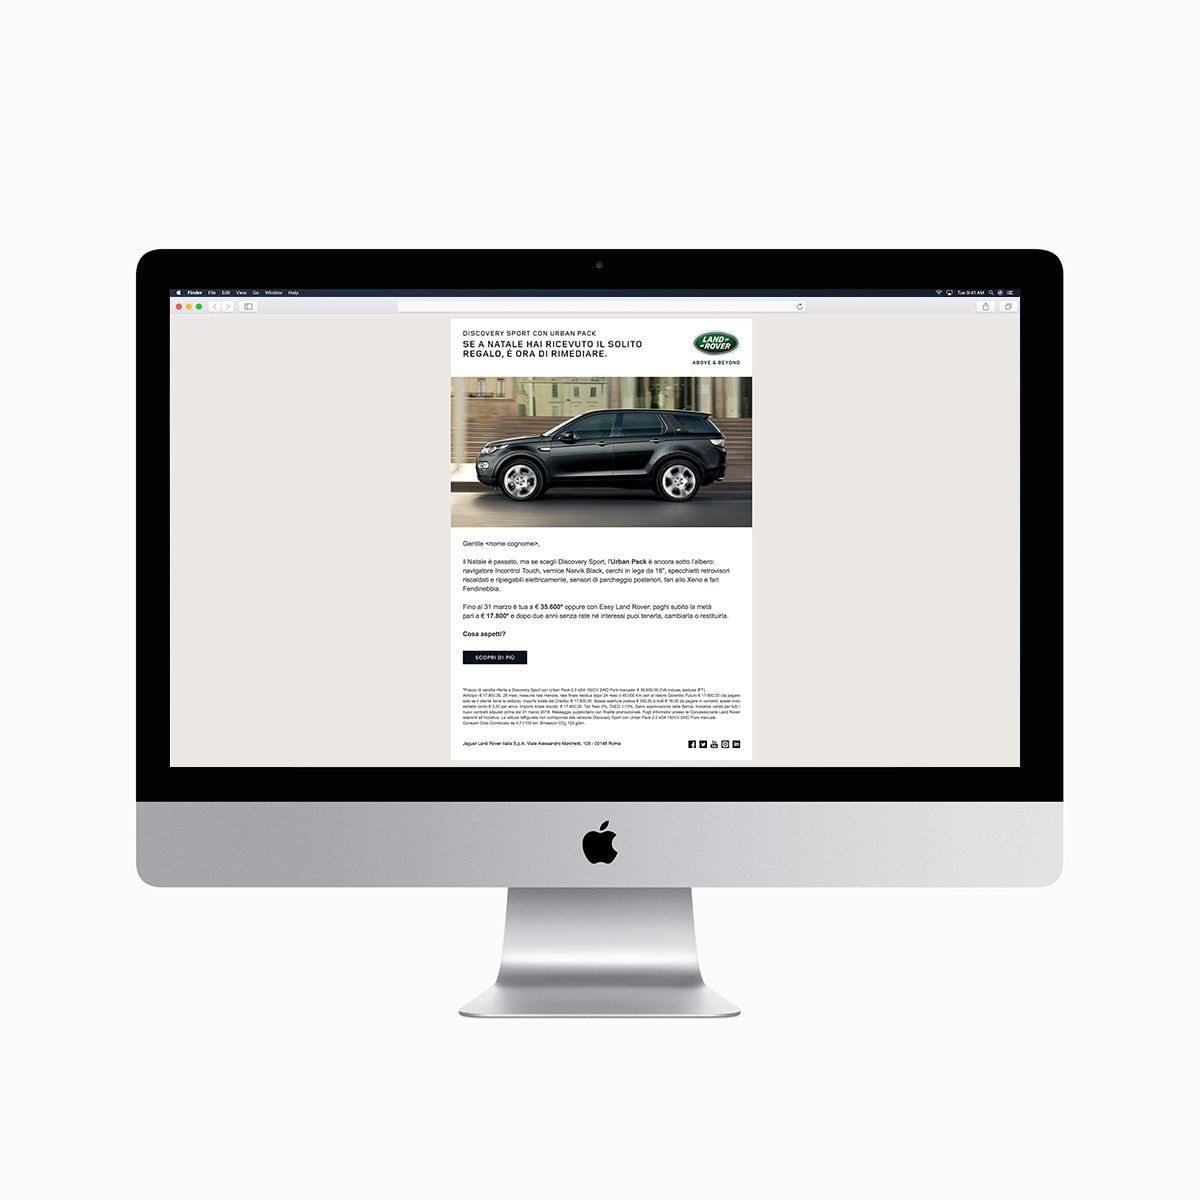 Monitor iMac con DeM Campagna Display Online Advertising per la Land Rover Discovery Sport - Urban Pack